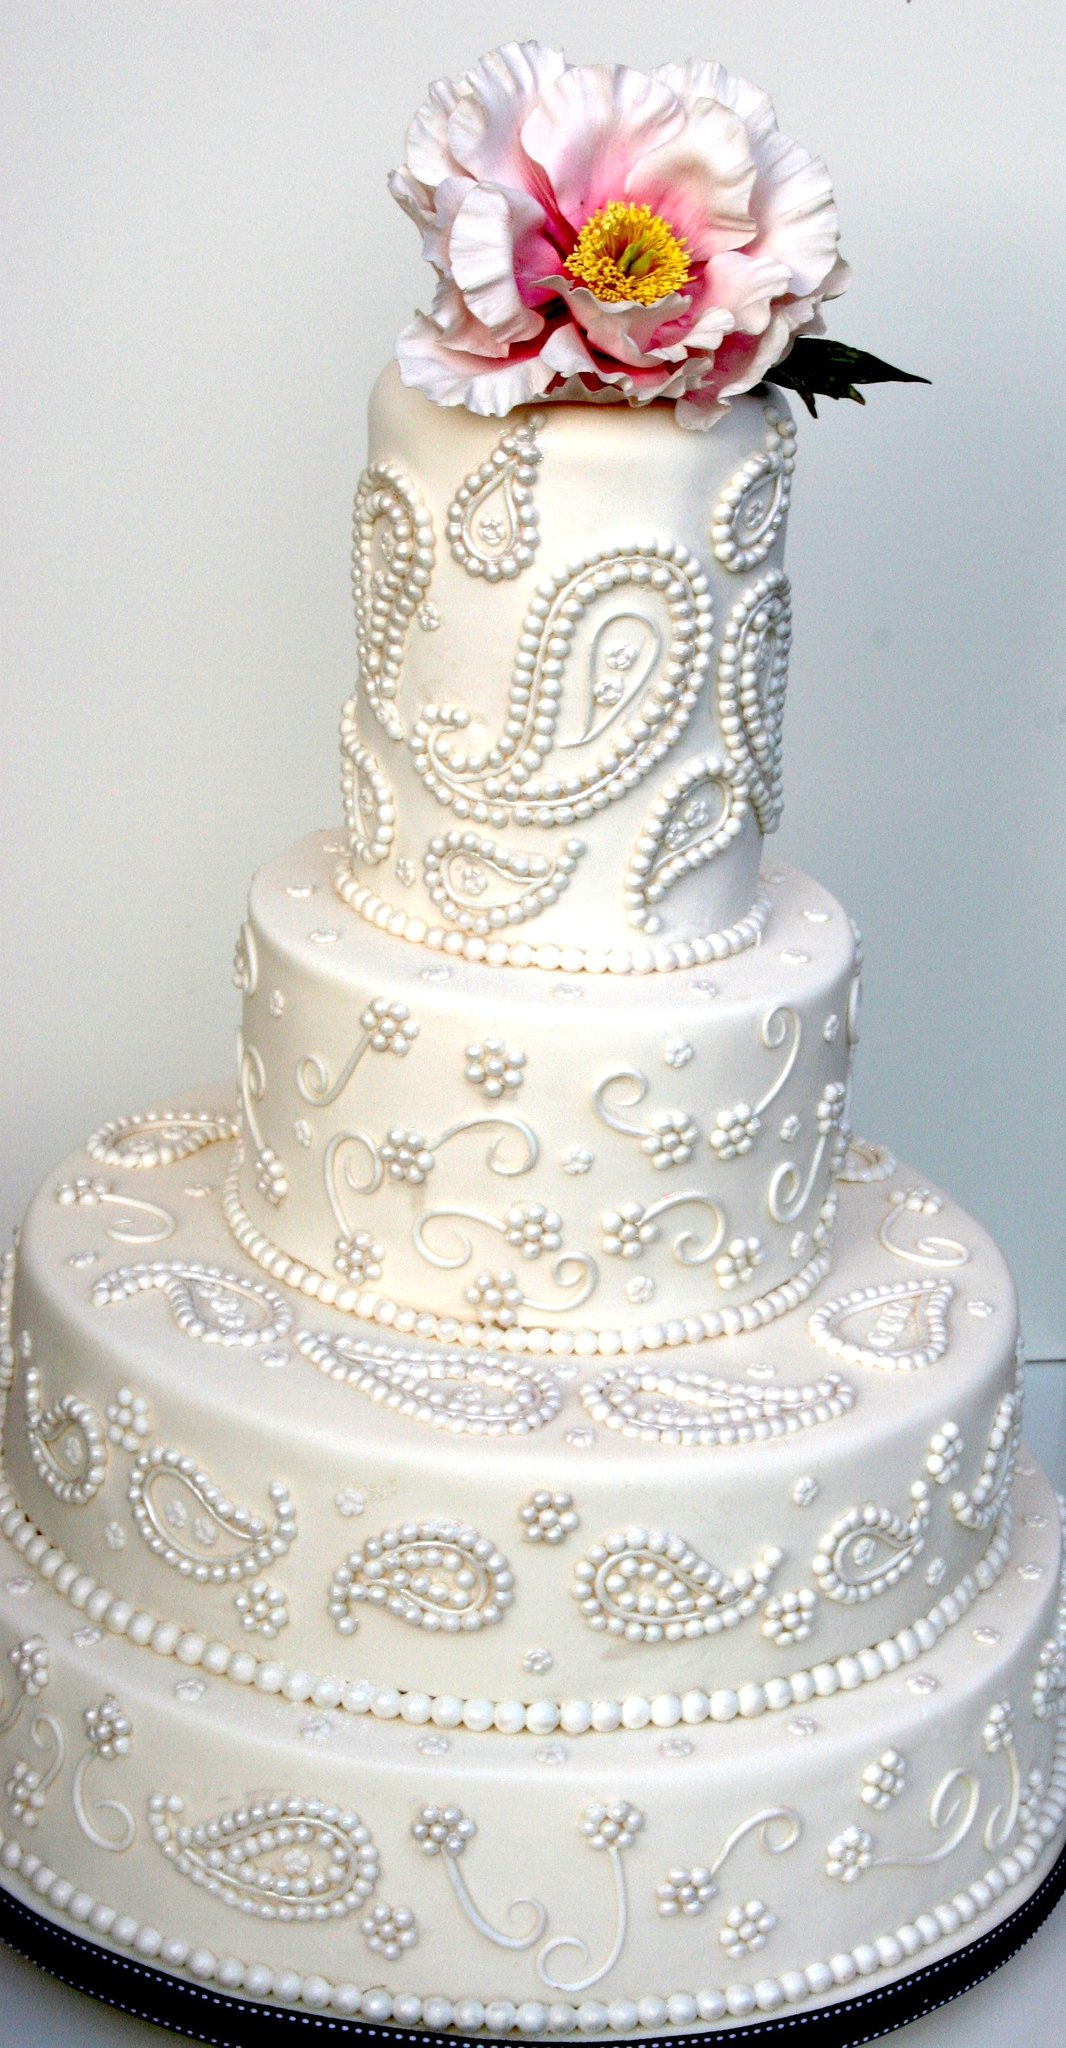 Paisley pearl cake inspired by a sari design